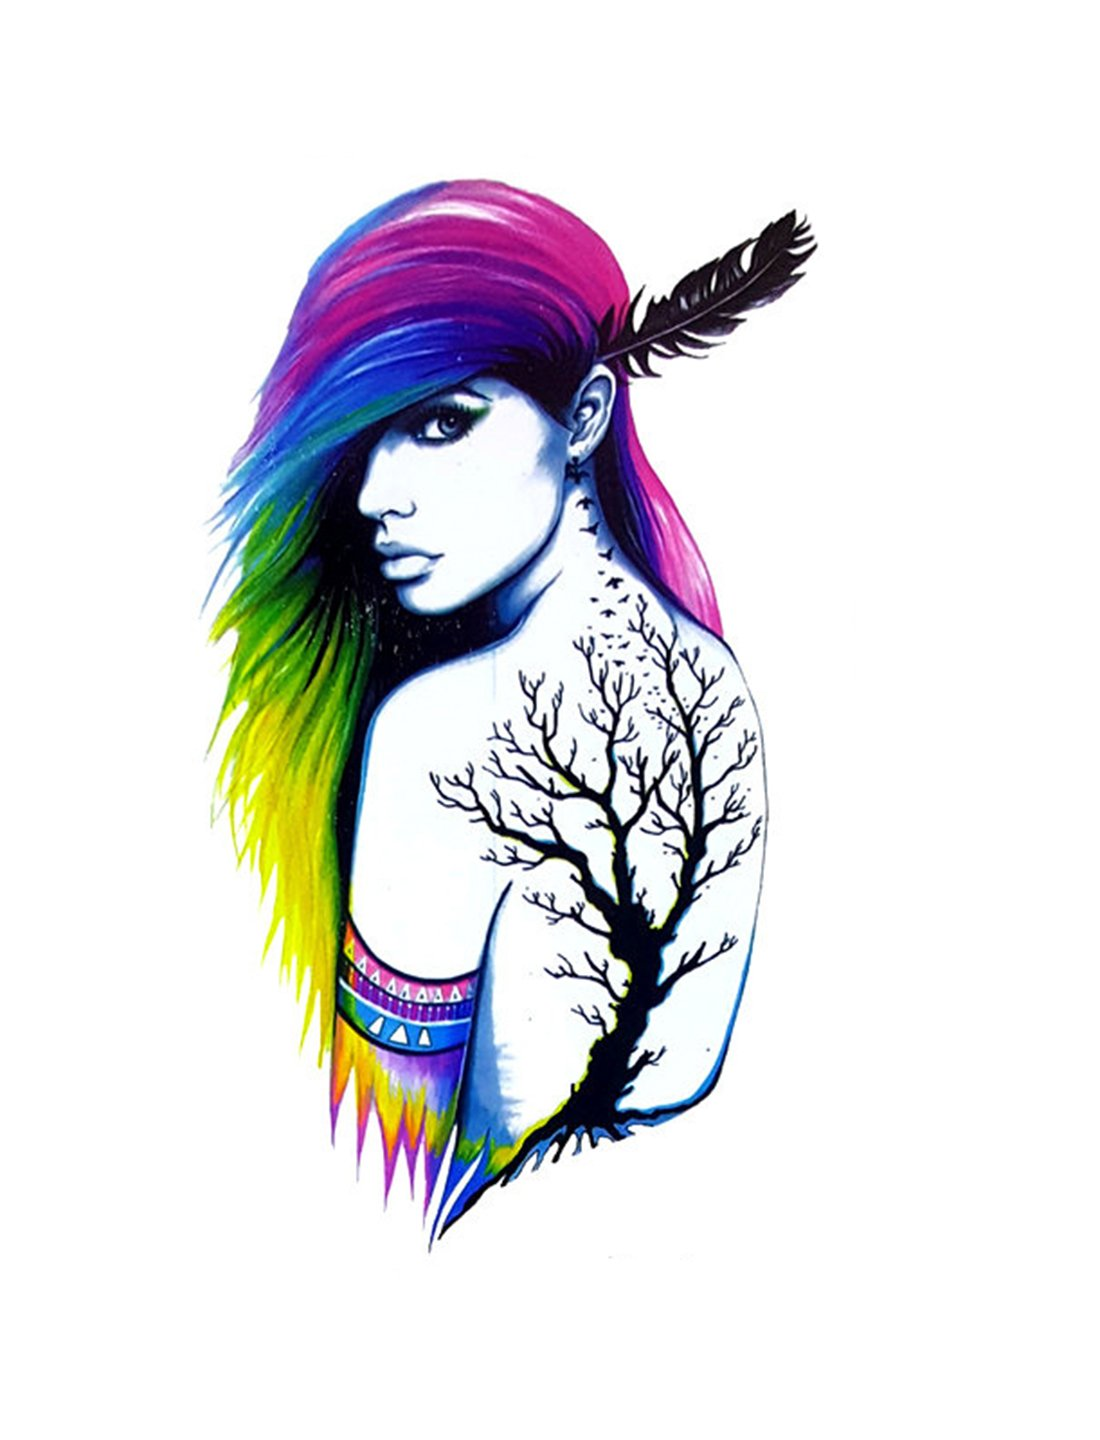 1100x1440 temporary tattoo for girls men women beautiful long hair women